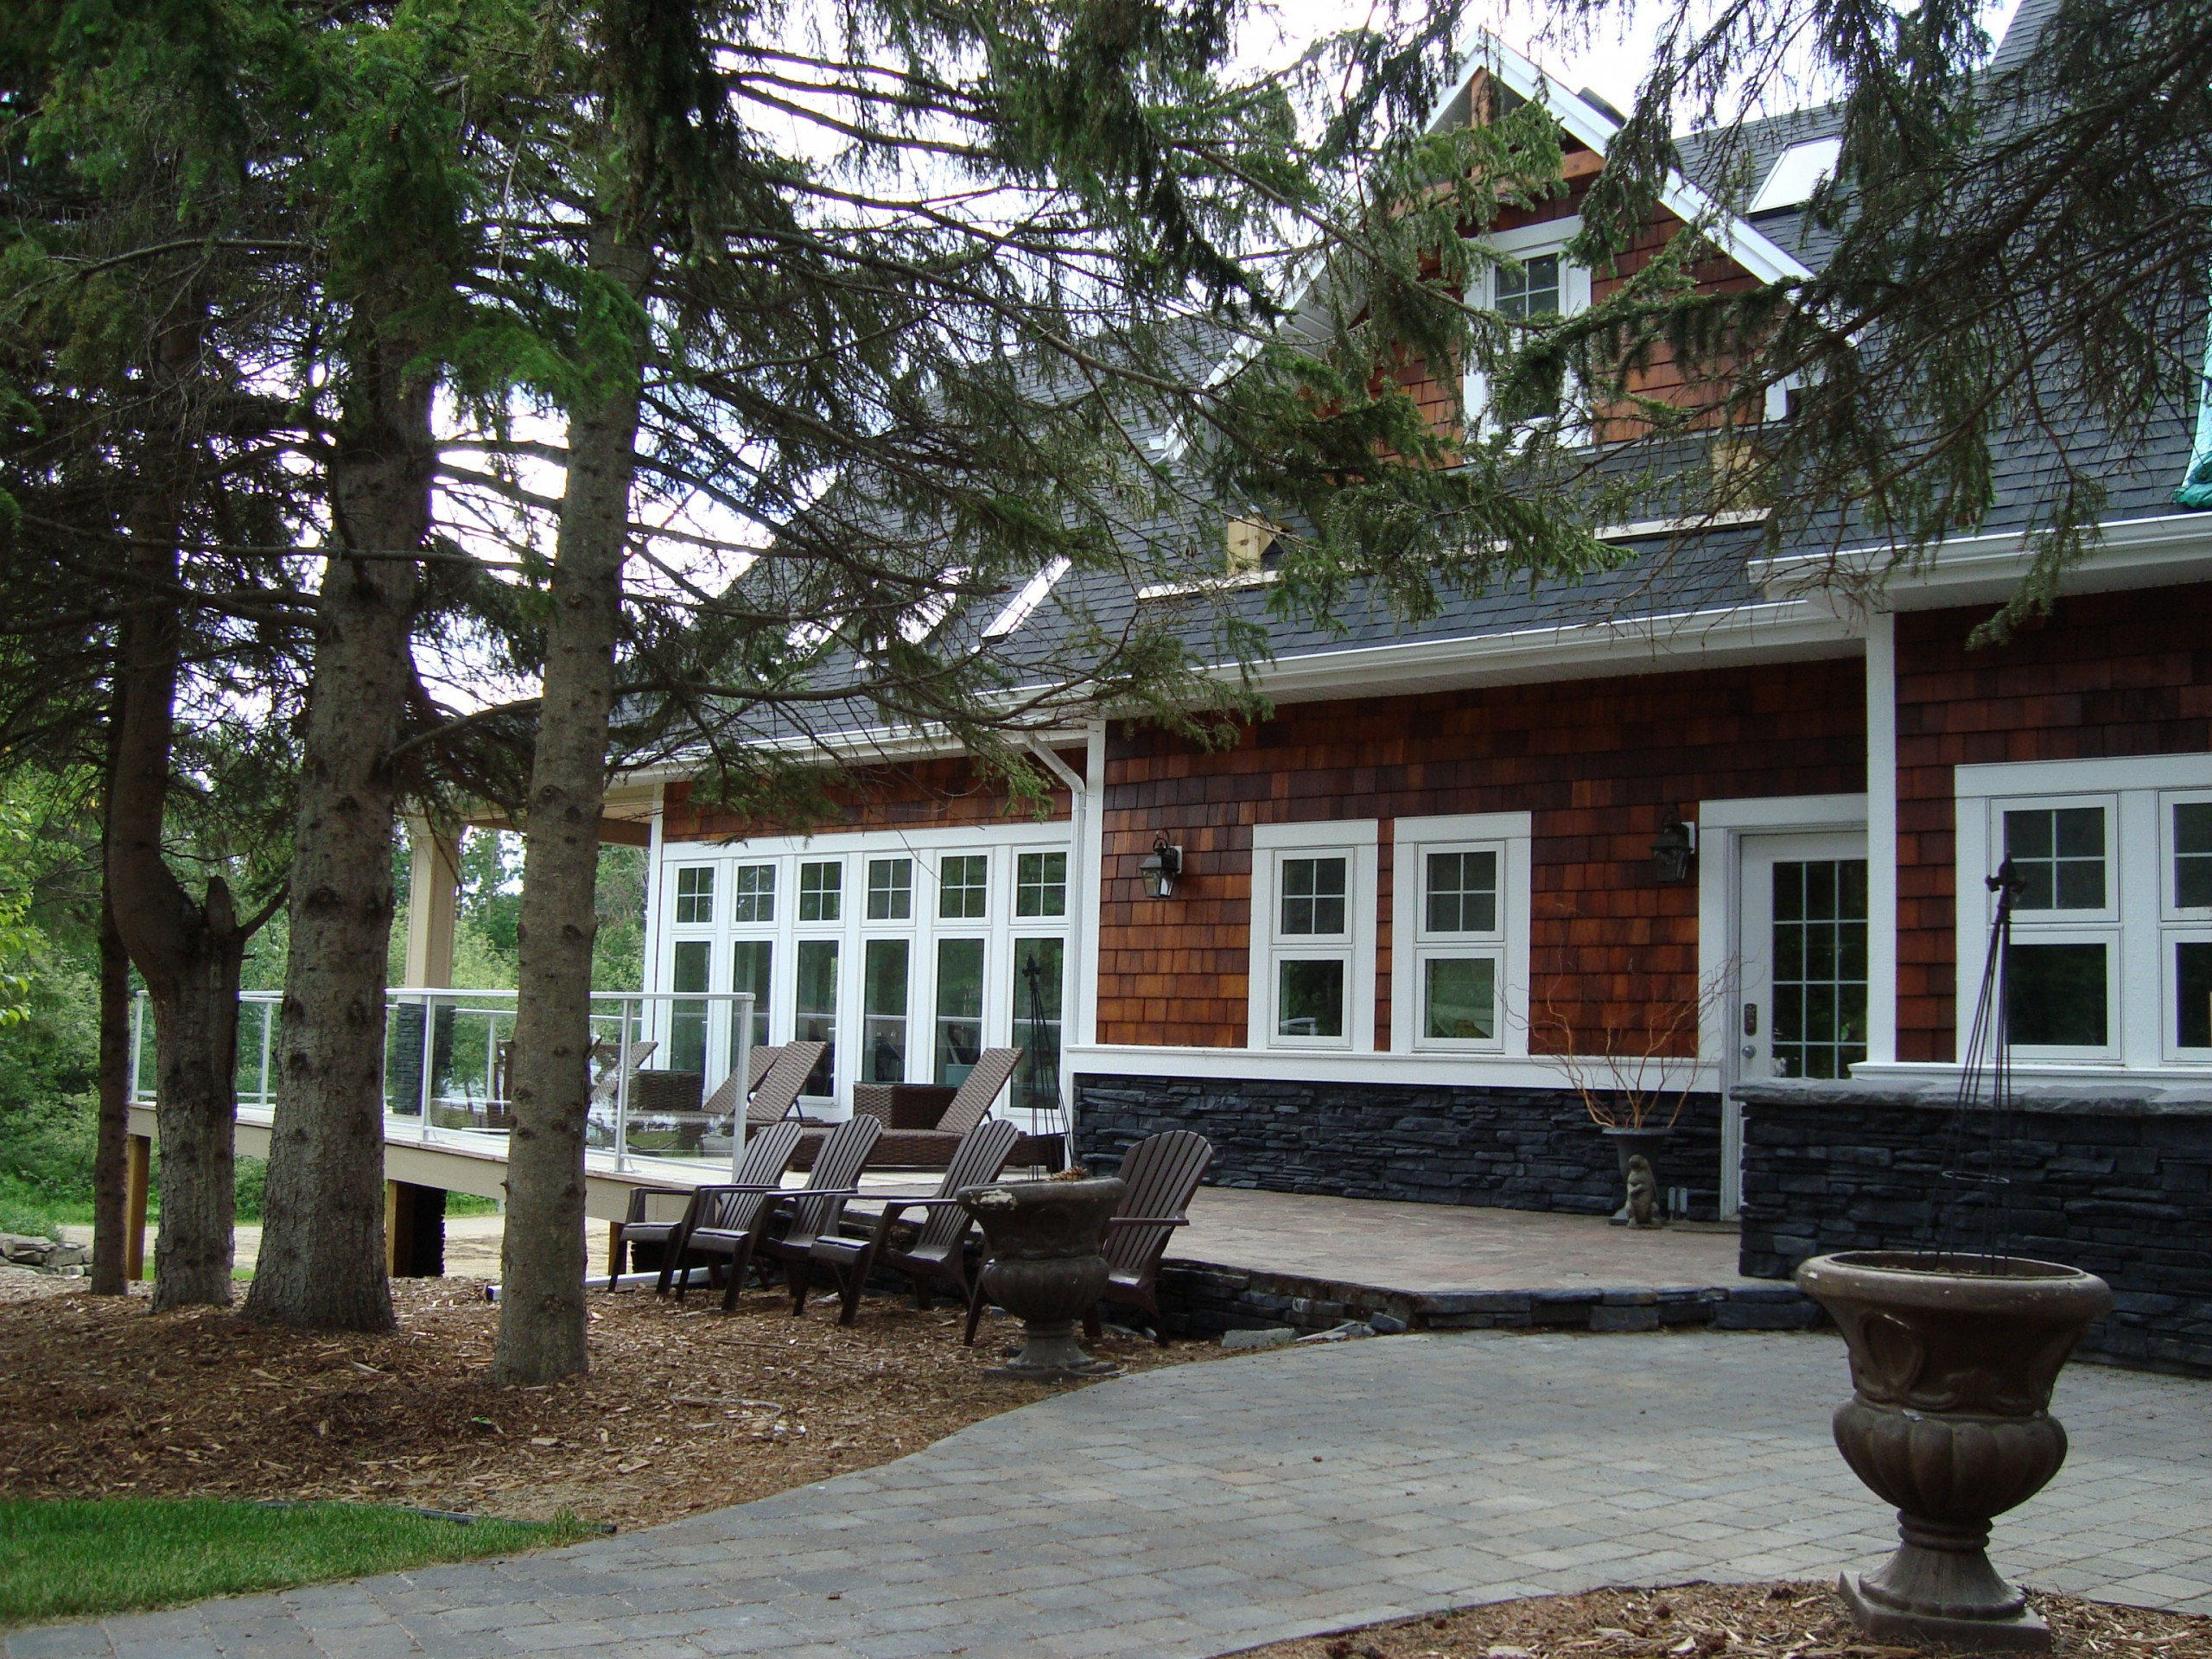 Exterior photo of cabin situated among mature trees, showing brick walkway up to main entrance, clear stained wood shingles and white trim.